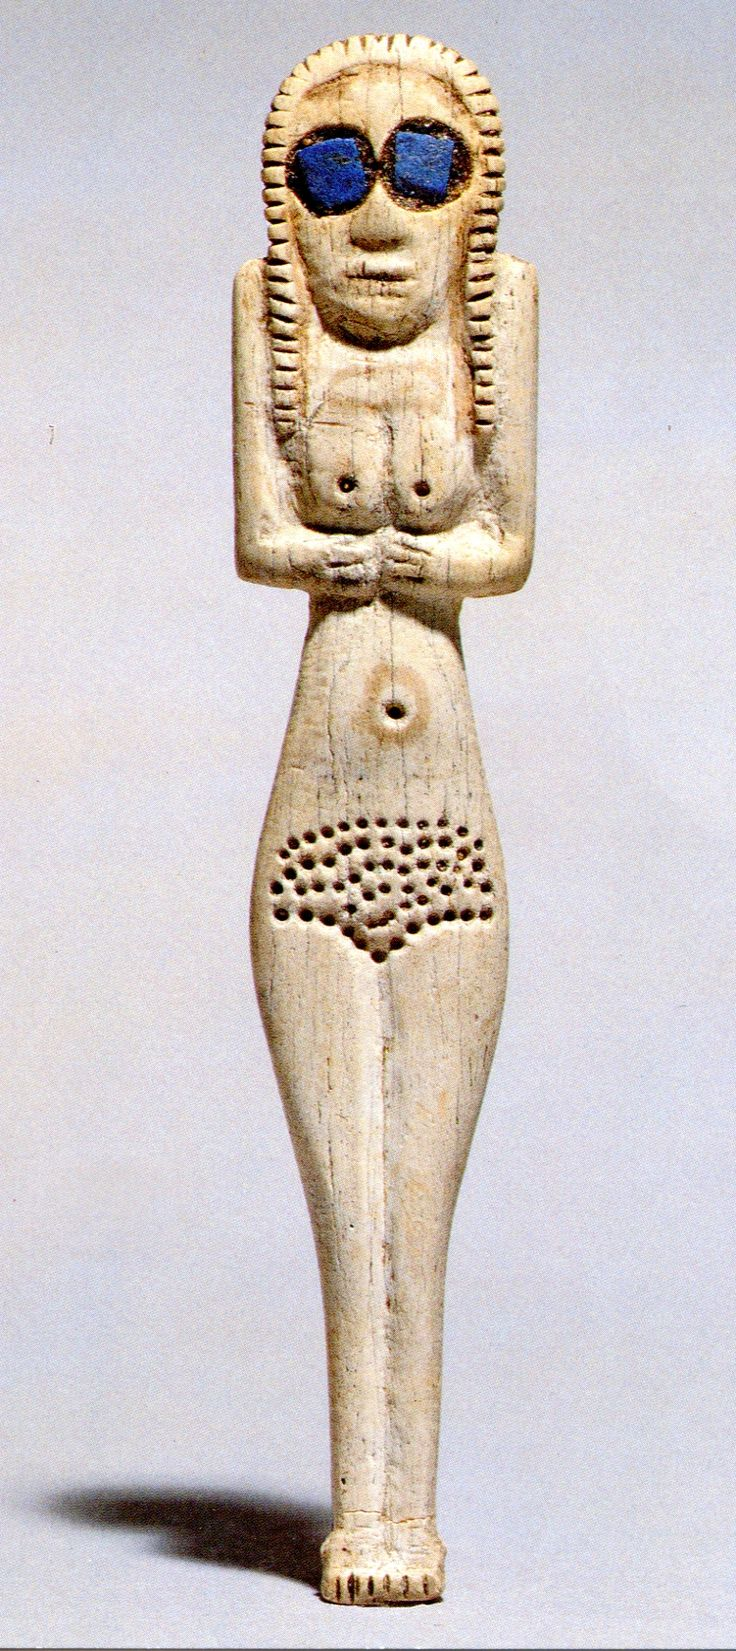 Bone figurine with lapis lazuli eyes, from Upper Egypt, Early Predynastic period, Naqada I, 4000-3600 BCE